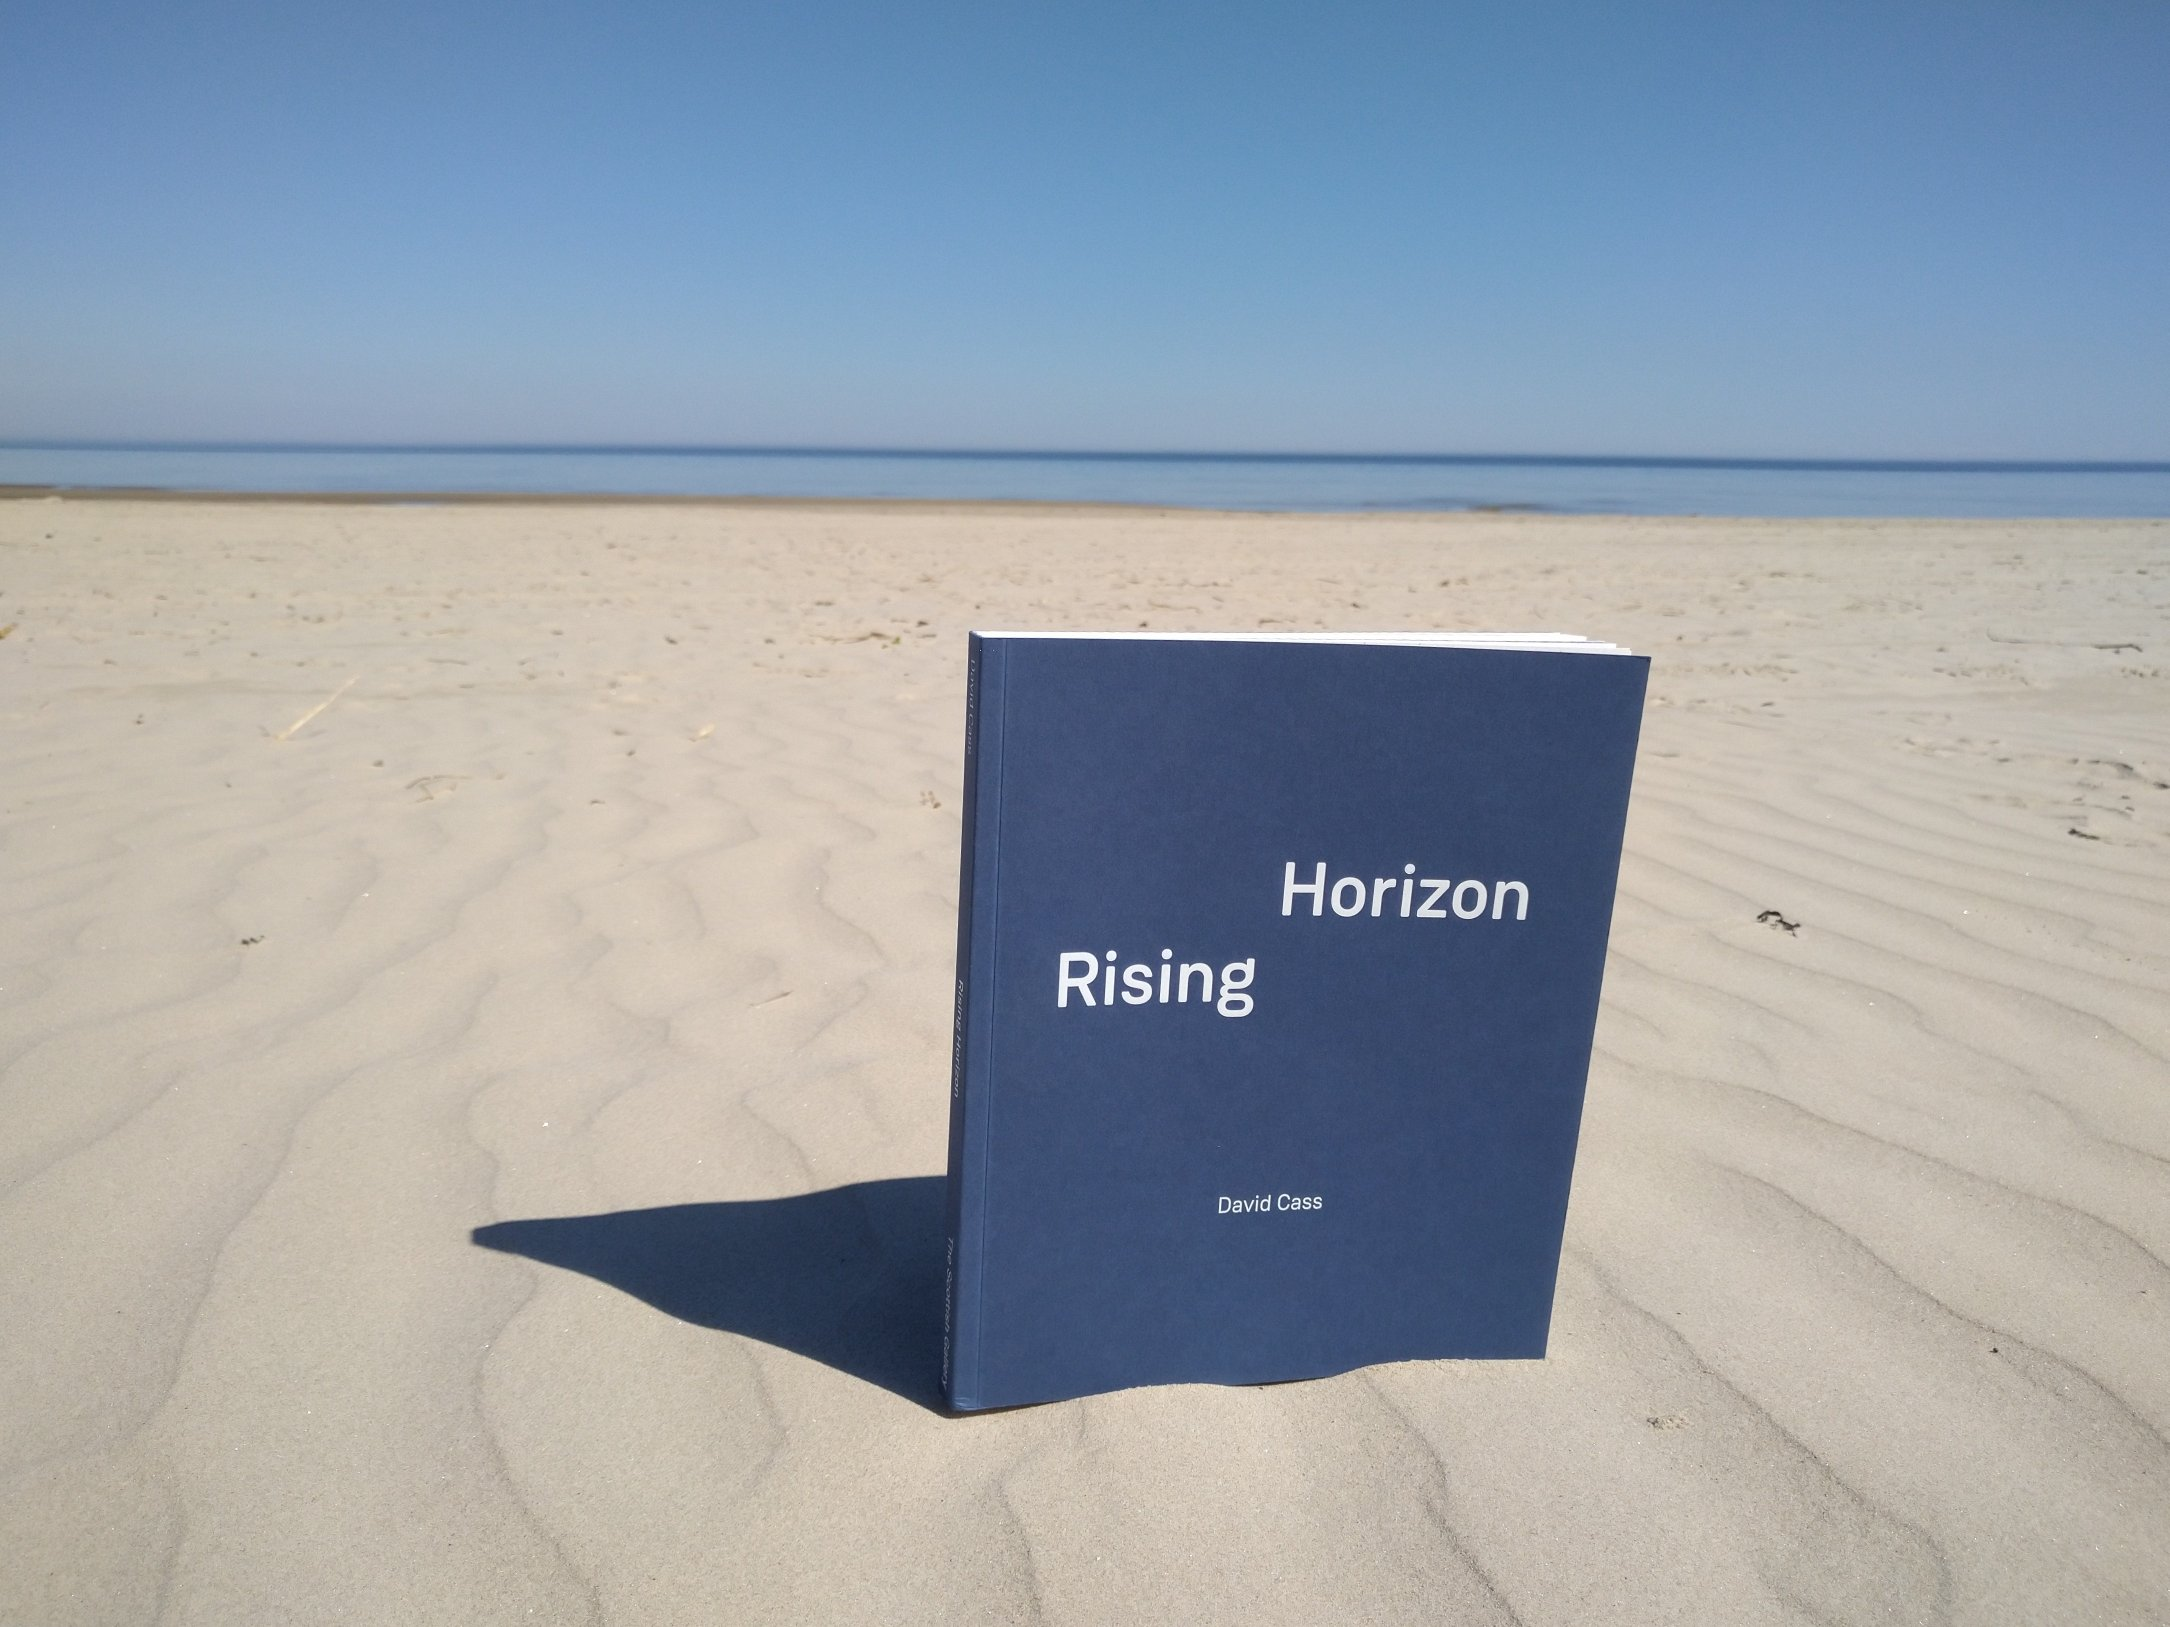 """Rising Horizon"" by David Cass. Photo by Beach Books"